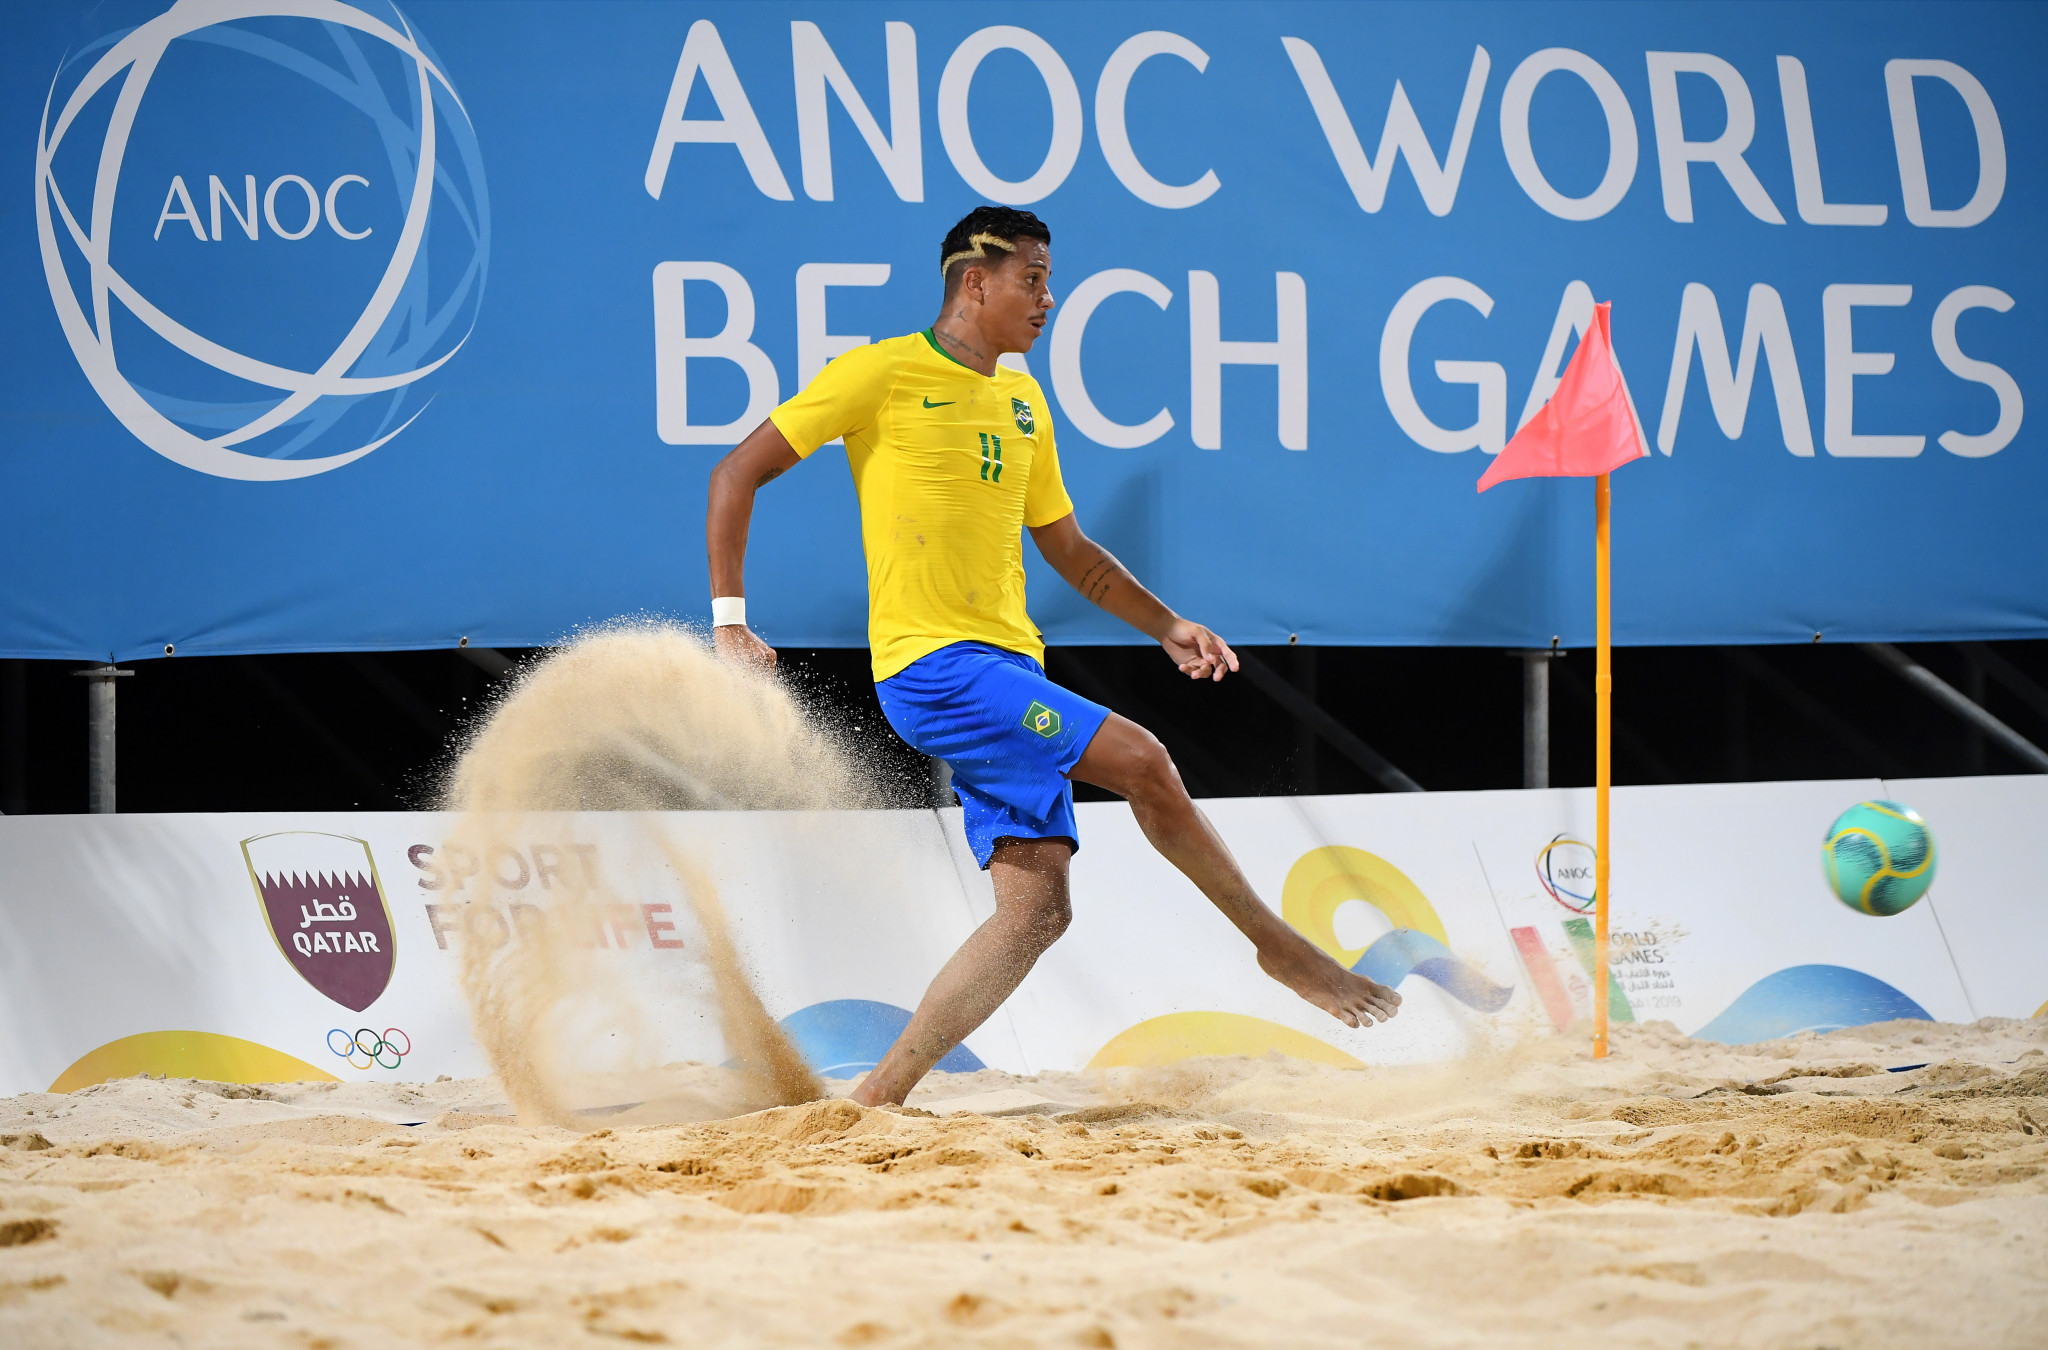 Core programme of 10 disciplines announced for 2023 and 2025 ANOC World Beach Games